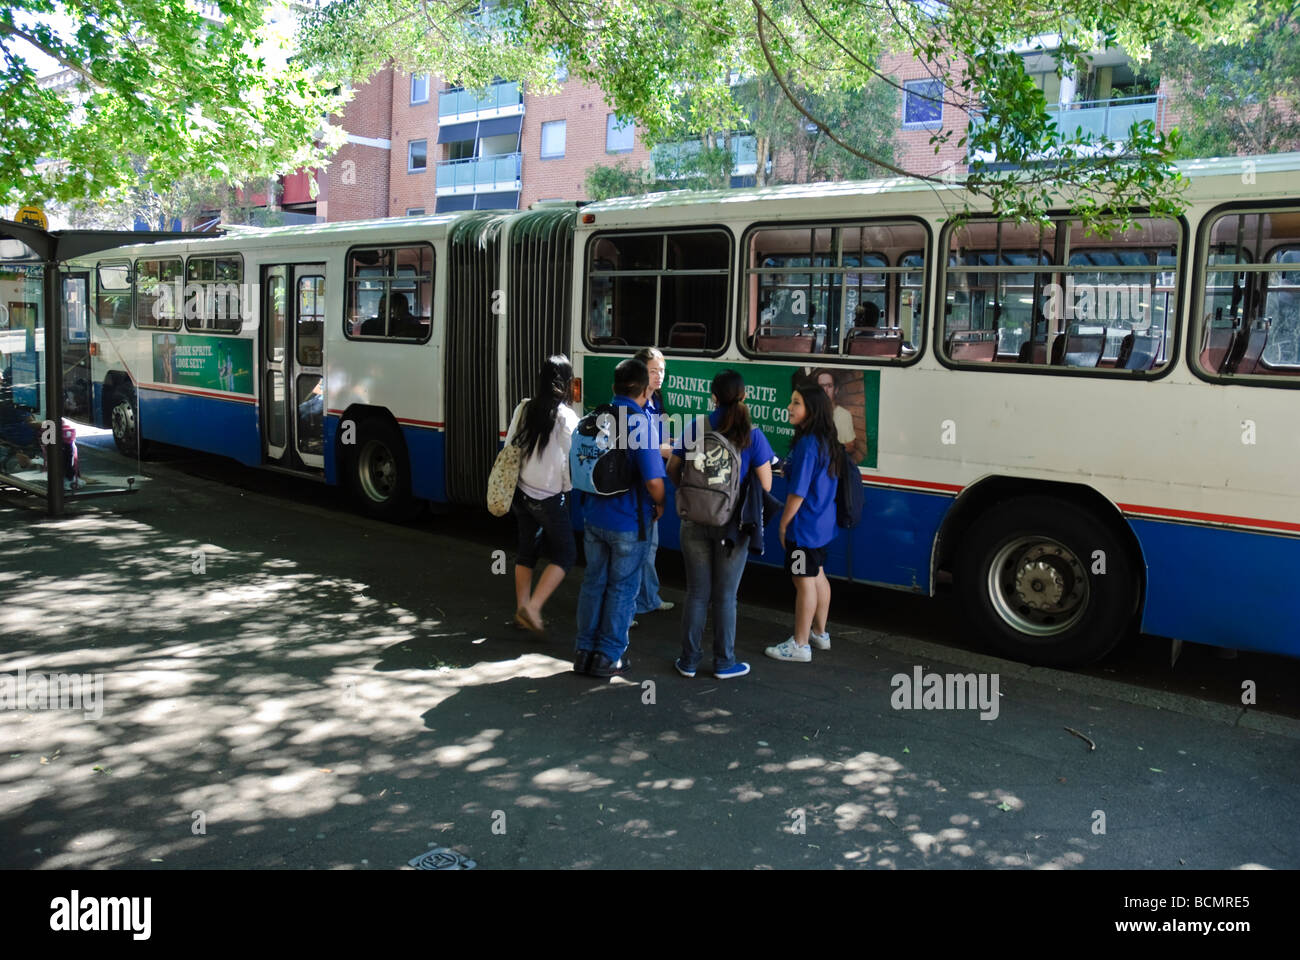 Schoolchildren chat next to an old bendy bus. - Stock Image